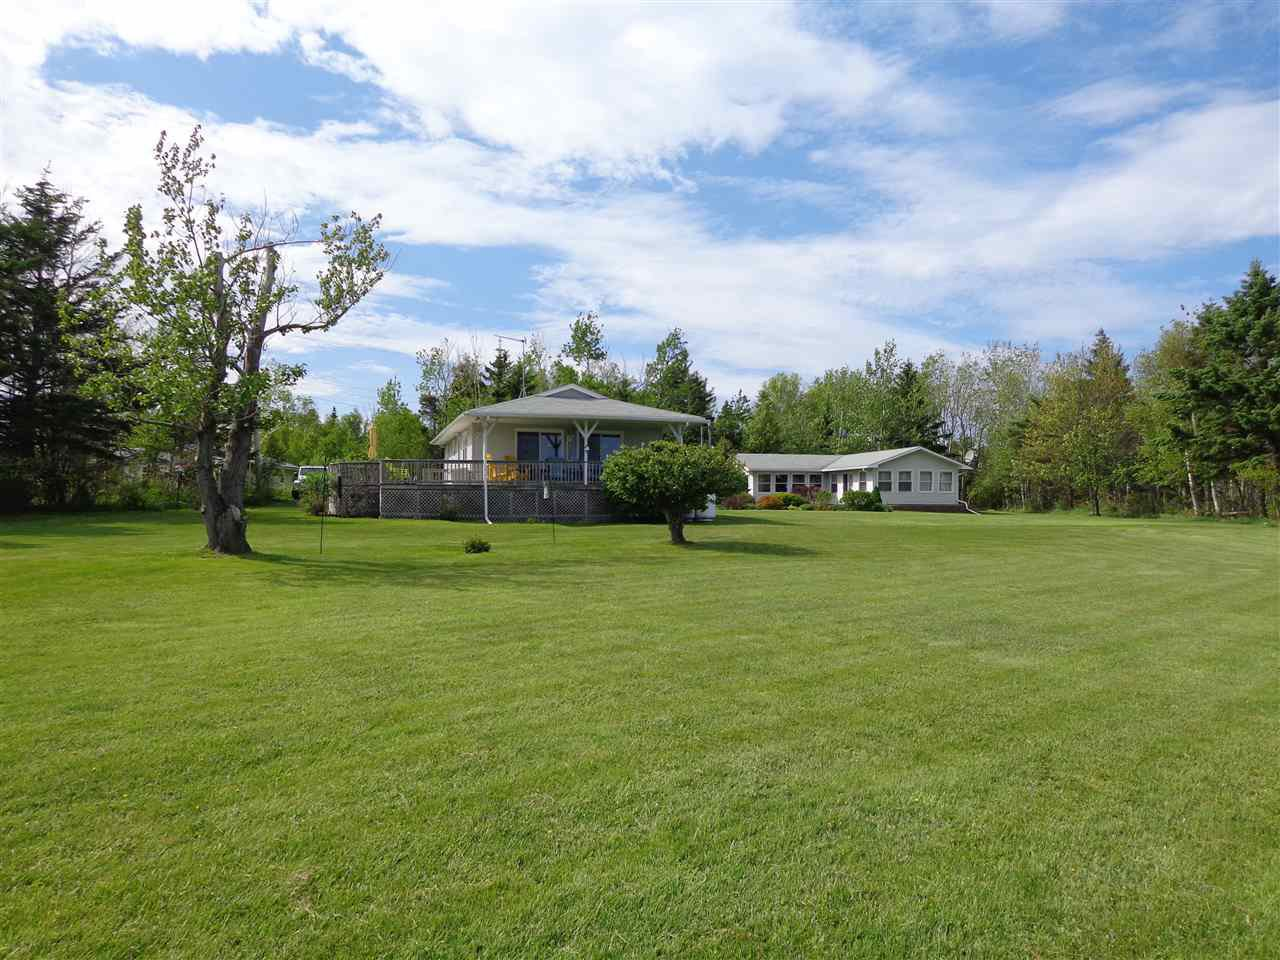 Main Photo: 10 Archibalds Lane in Caribou Island: 108-Rural Pictou County Residential for sale (Northern Region)  : MLS®# 202010497